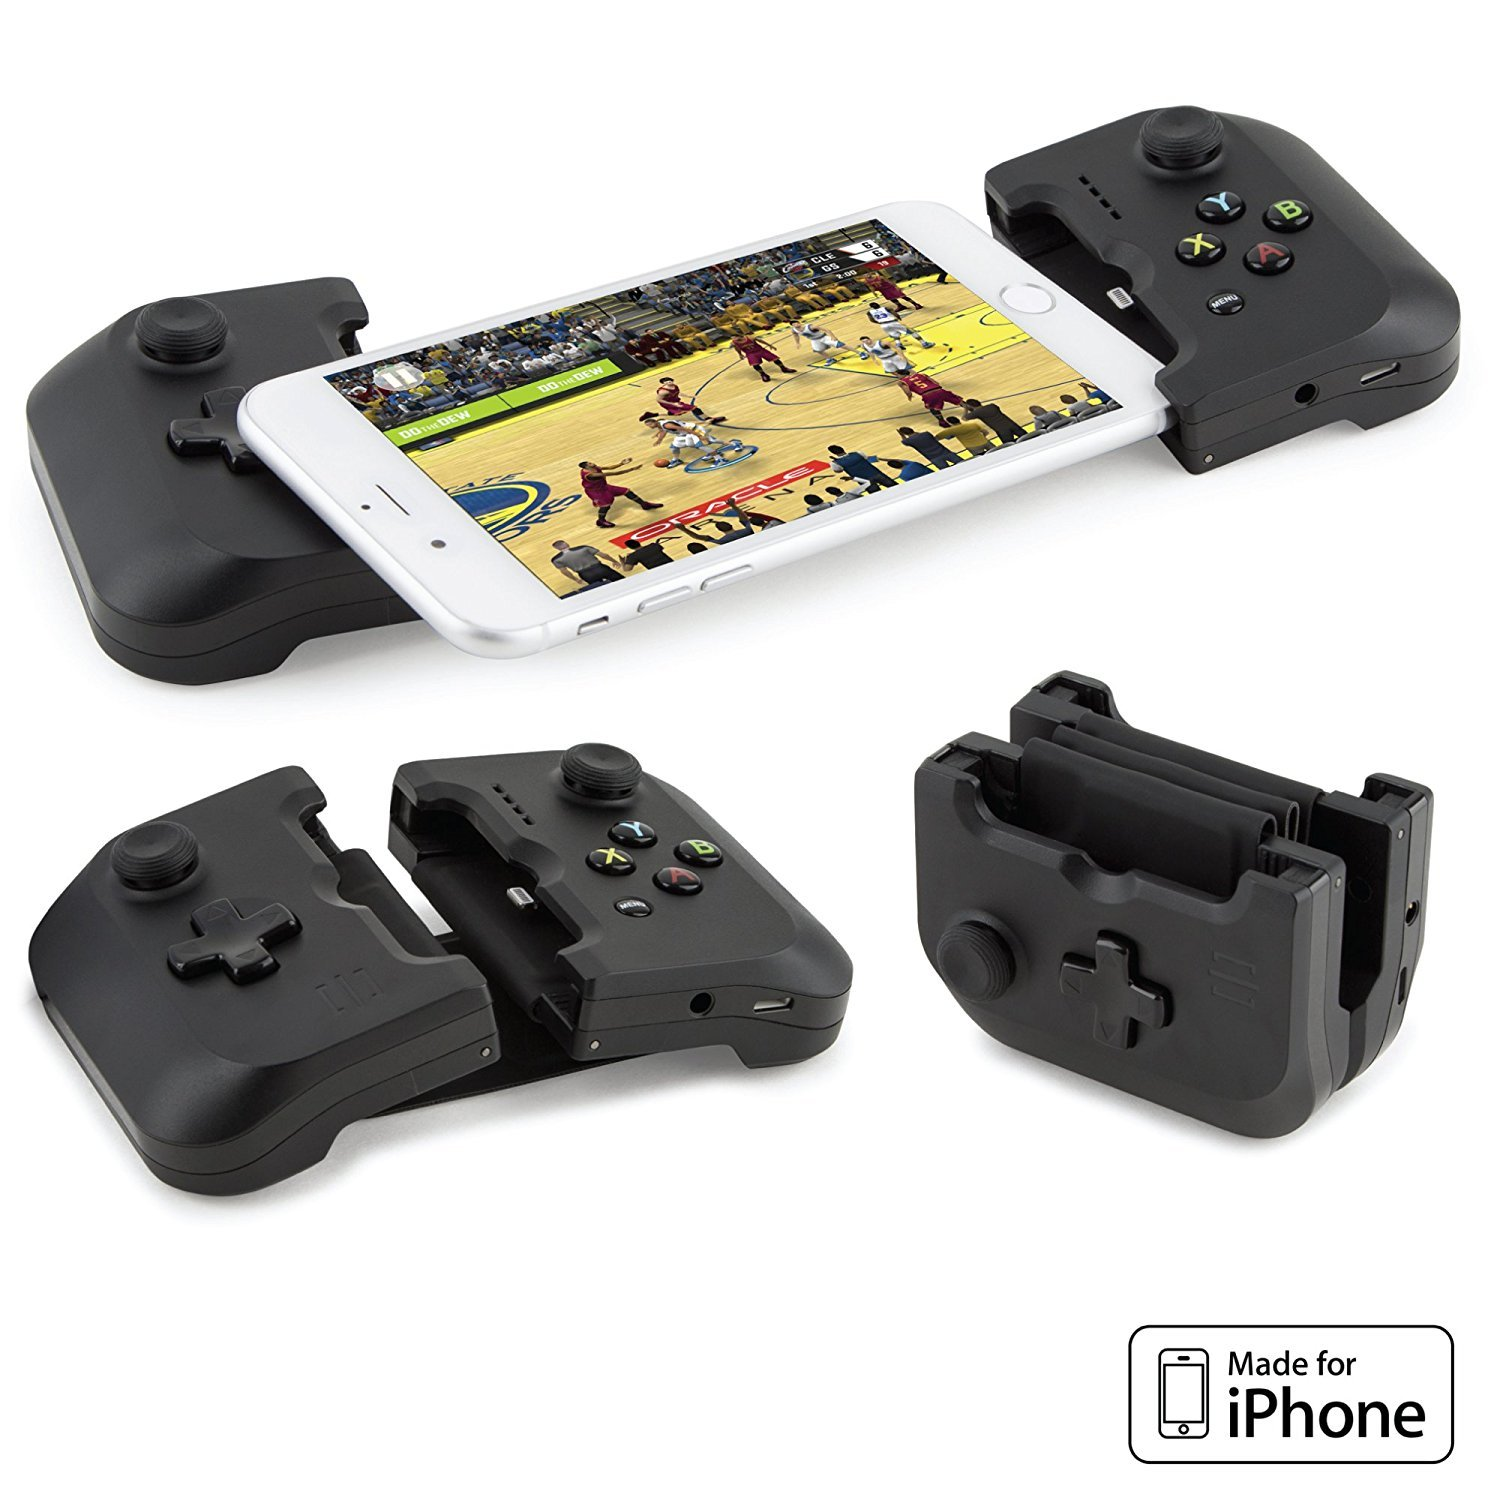 low priced bc57b e24a2 Gamevice Controller – Gamepad Game Controller iPhone X/XS/XS Max/8/7/6 &  Plus [Apple MFi Certified] [DJI Spark, Tello, Sphero Star Wars] - 1000+ ...